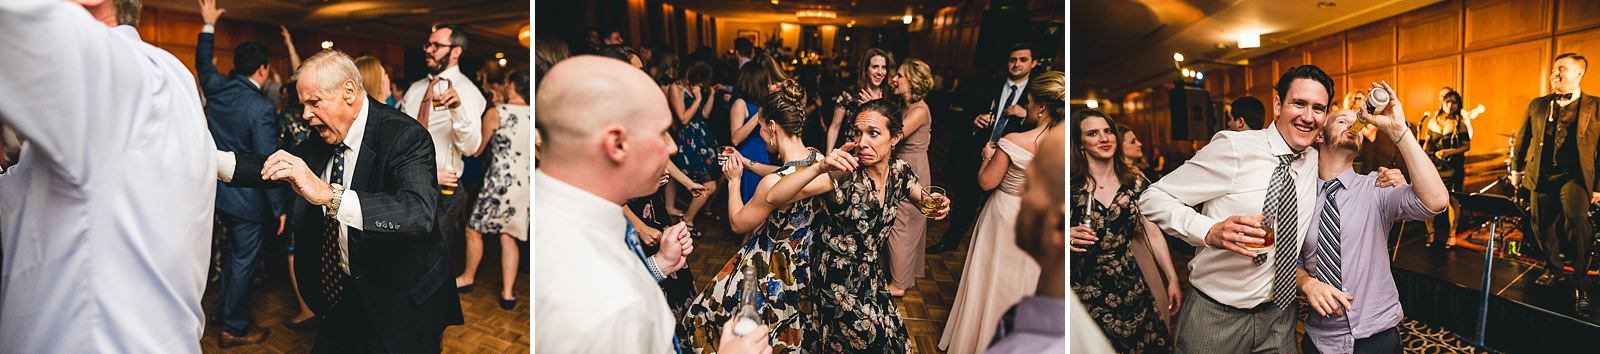 66 best mid america club wedding photographers - Mid America Club Wedding Photography / Hannah + Jay